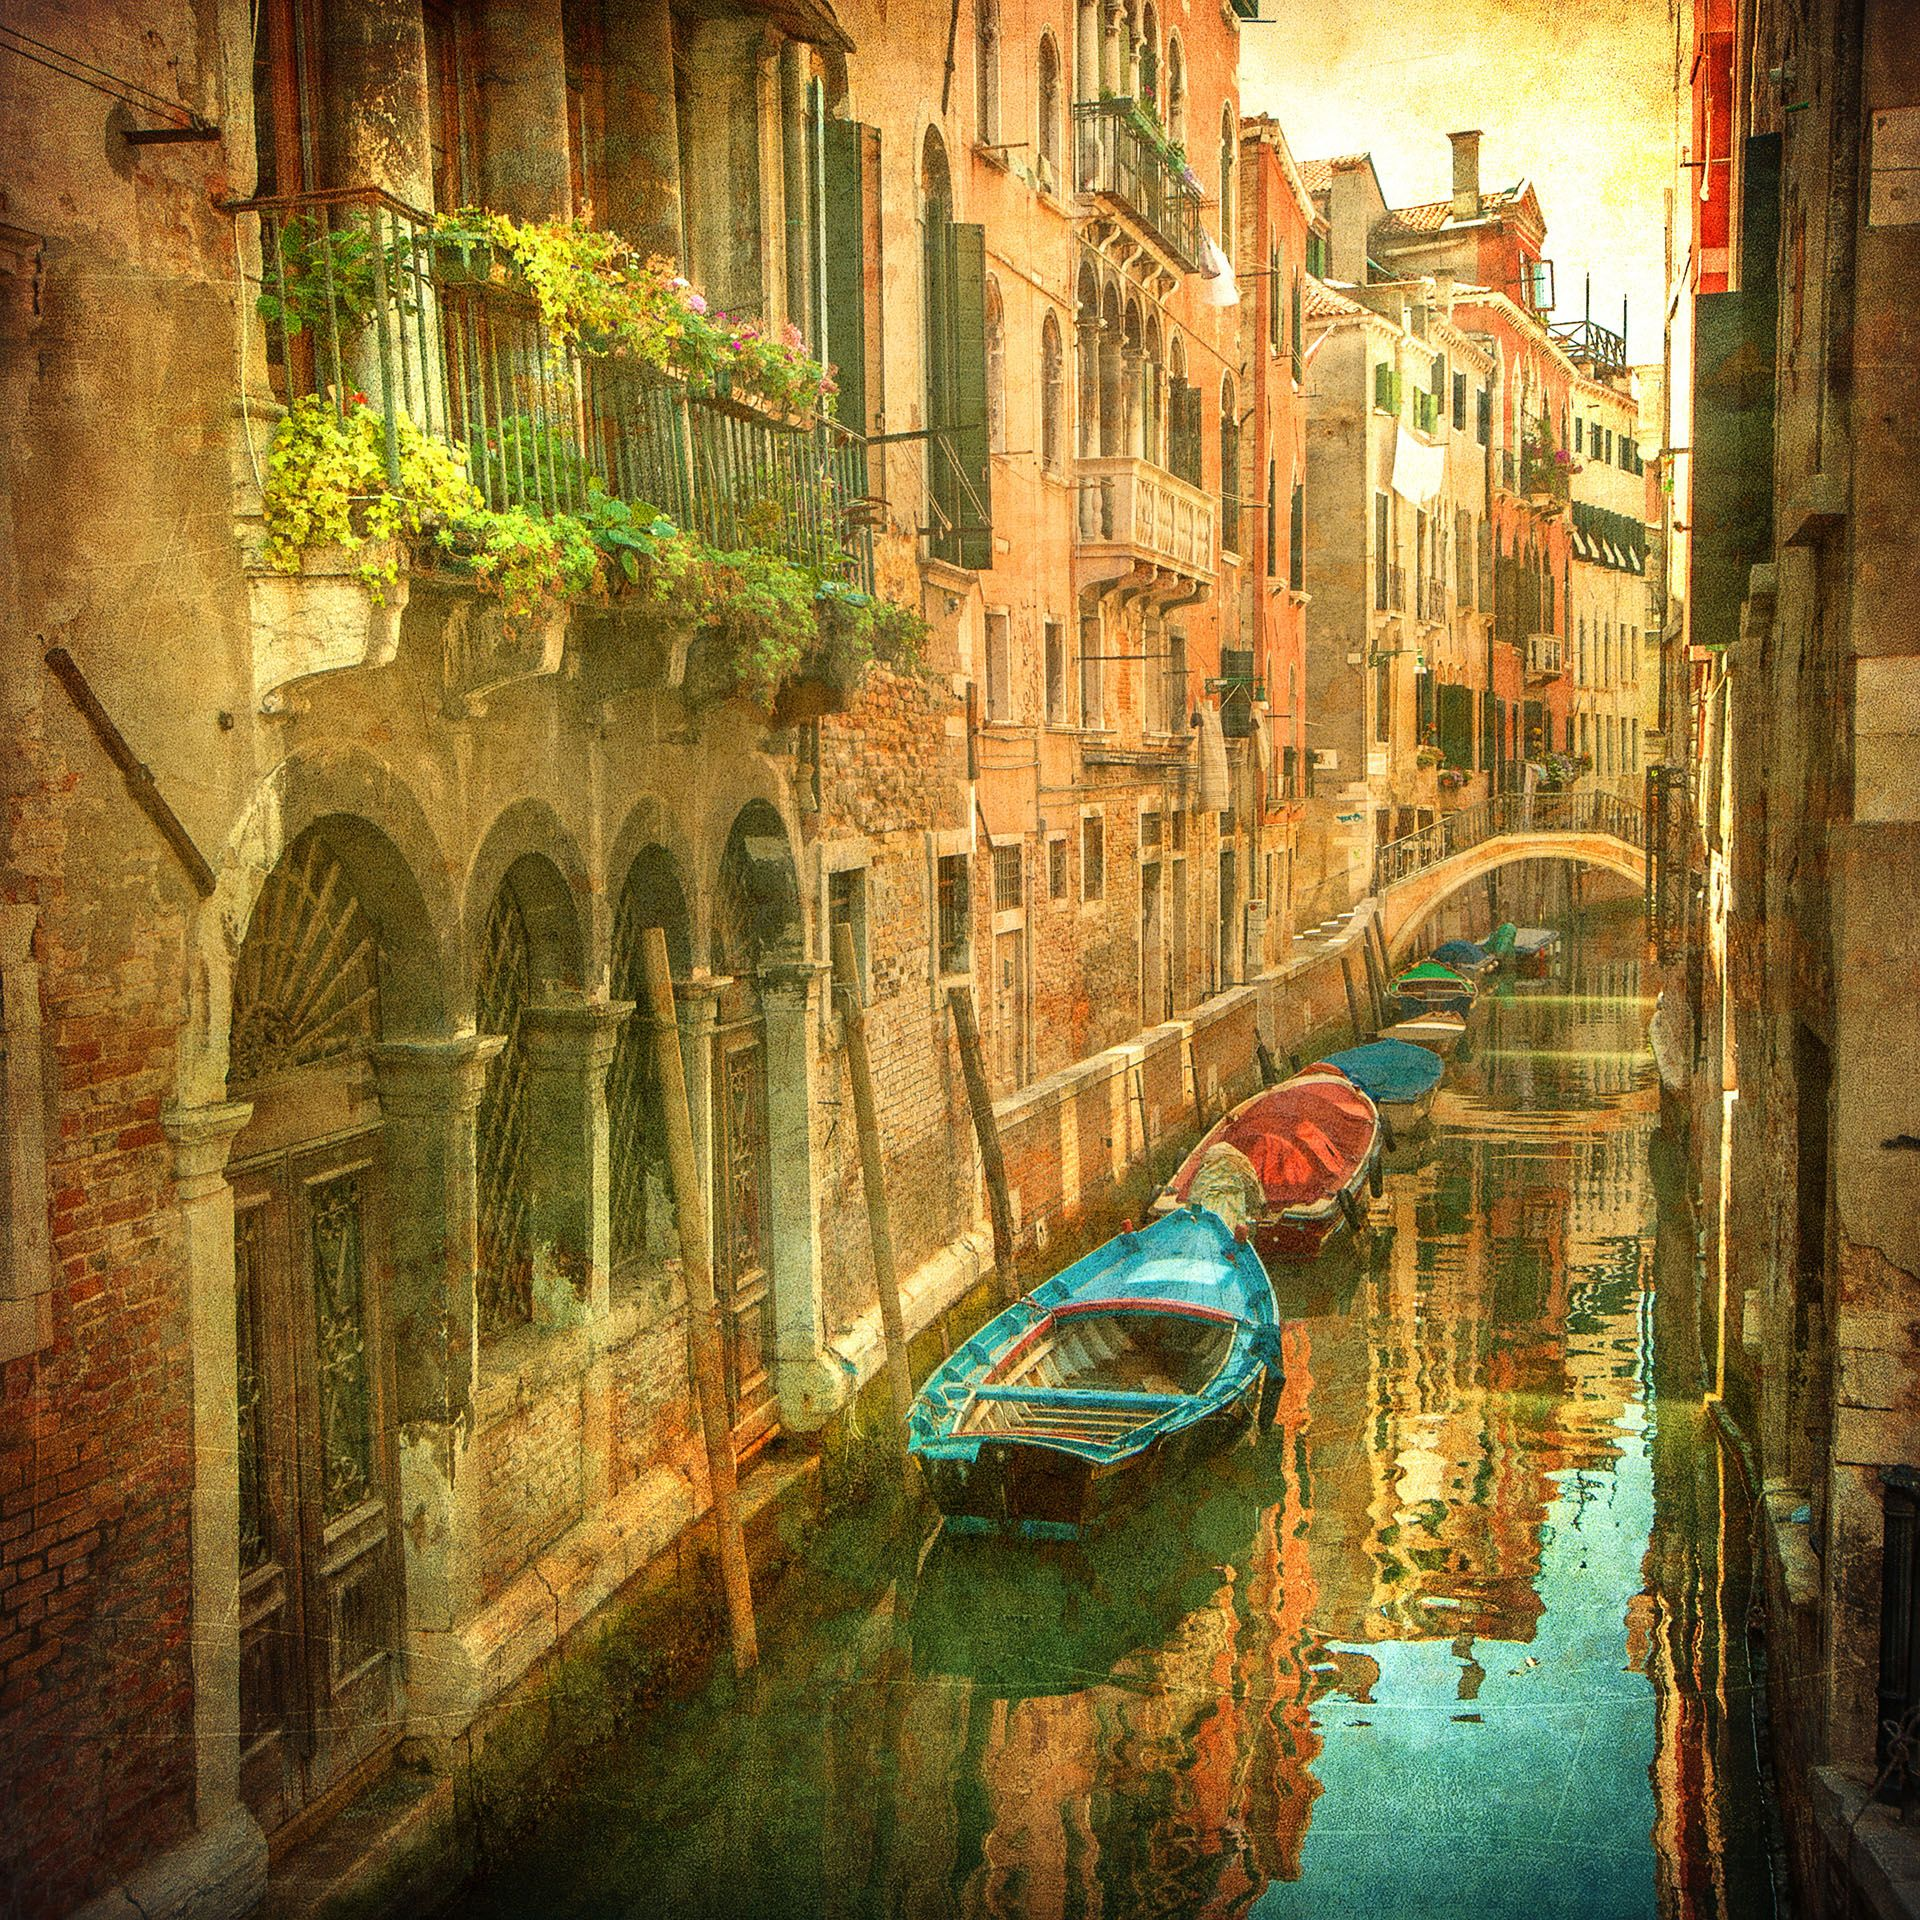 Details about Vintage Venice Canal Italy Photo Wallpaper